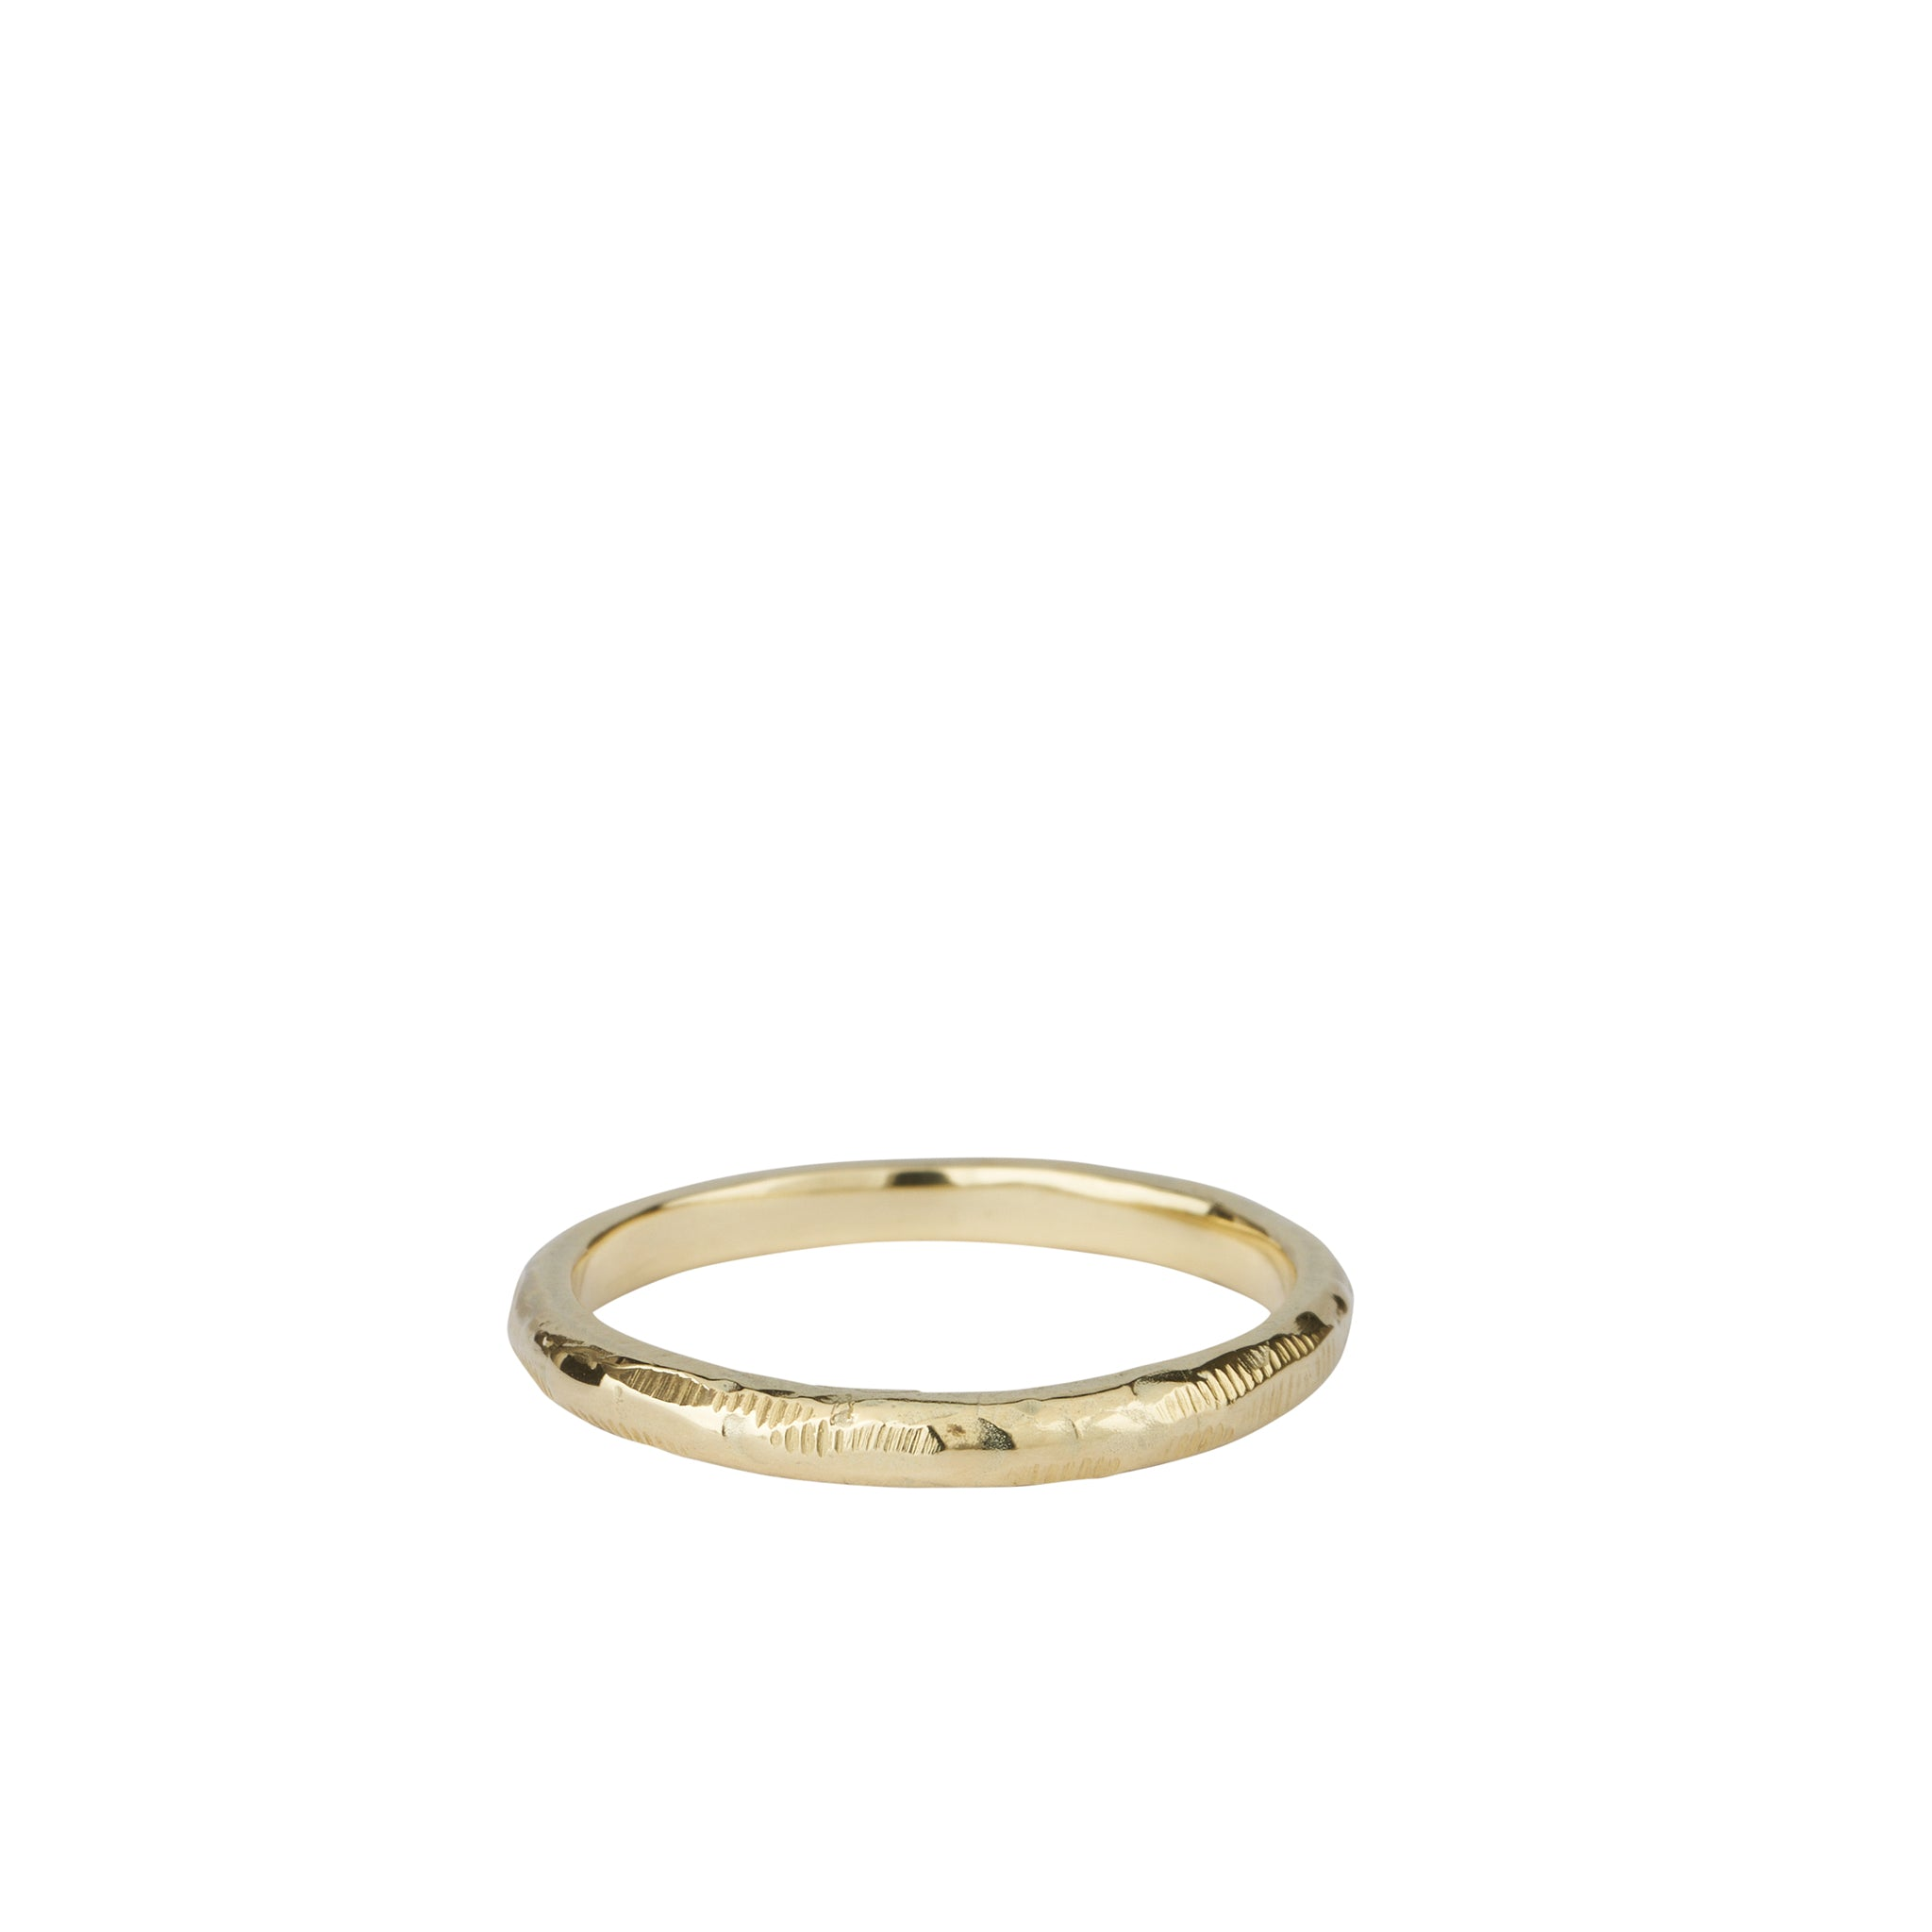 textured gold wedding ring band